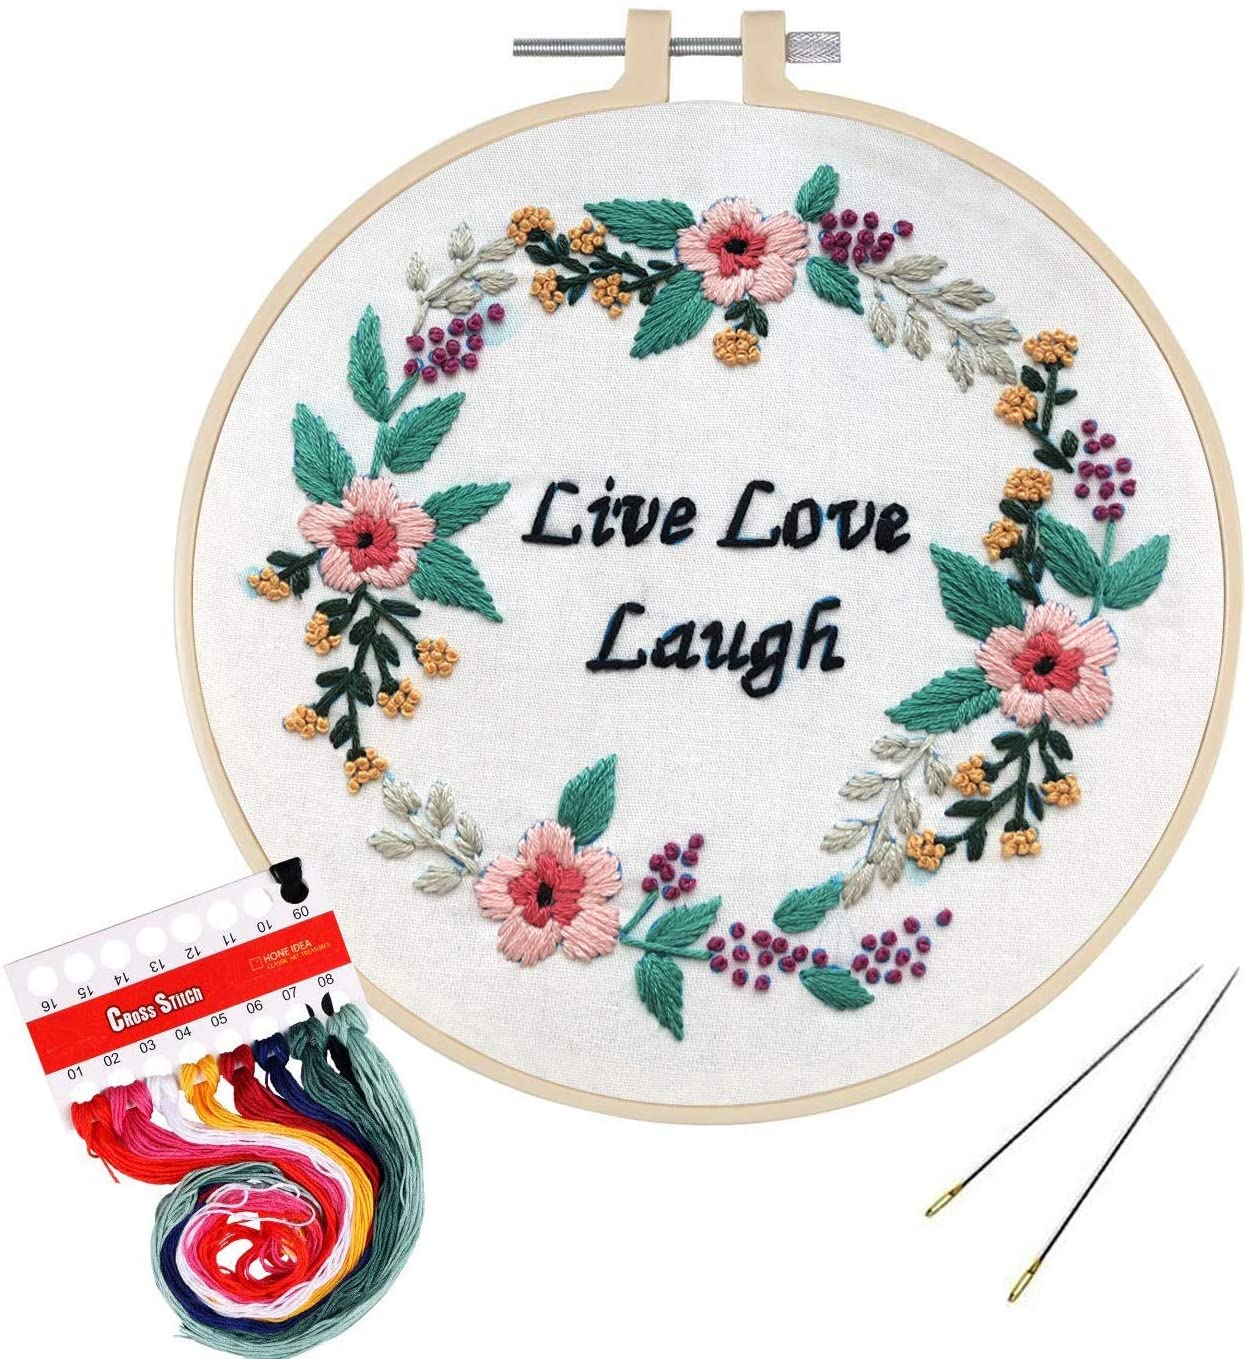 Full Range of Embroidery Kit with Pattern, Hartop Cross Stitch Starter Kit Including Embroidery Cloth with Plants Pattern,Plastic Hoop, Color Threads and Tools Kit (Love)